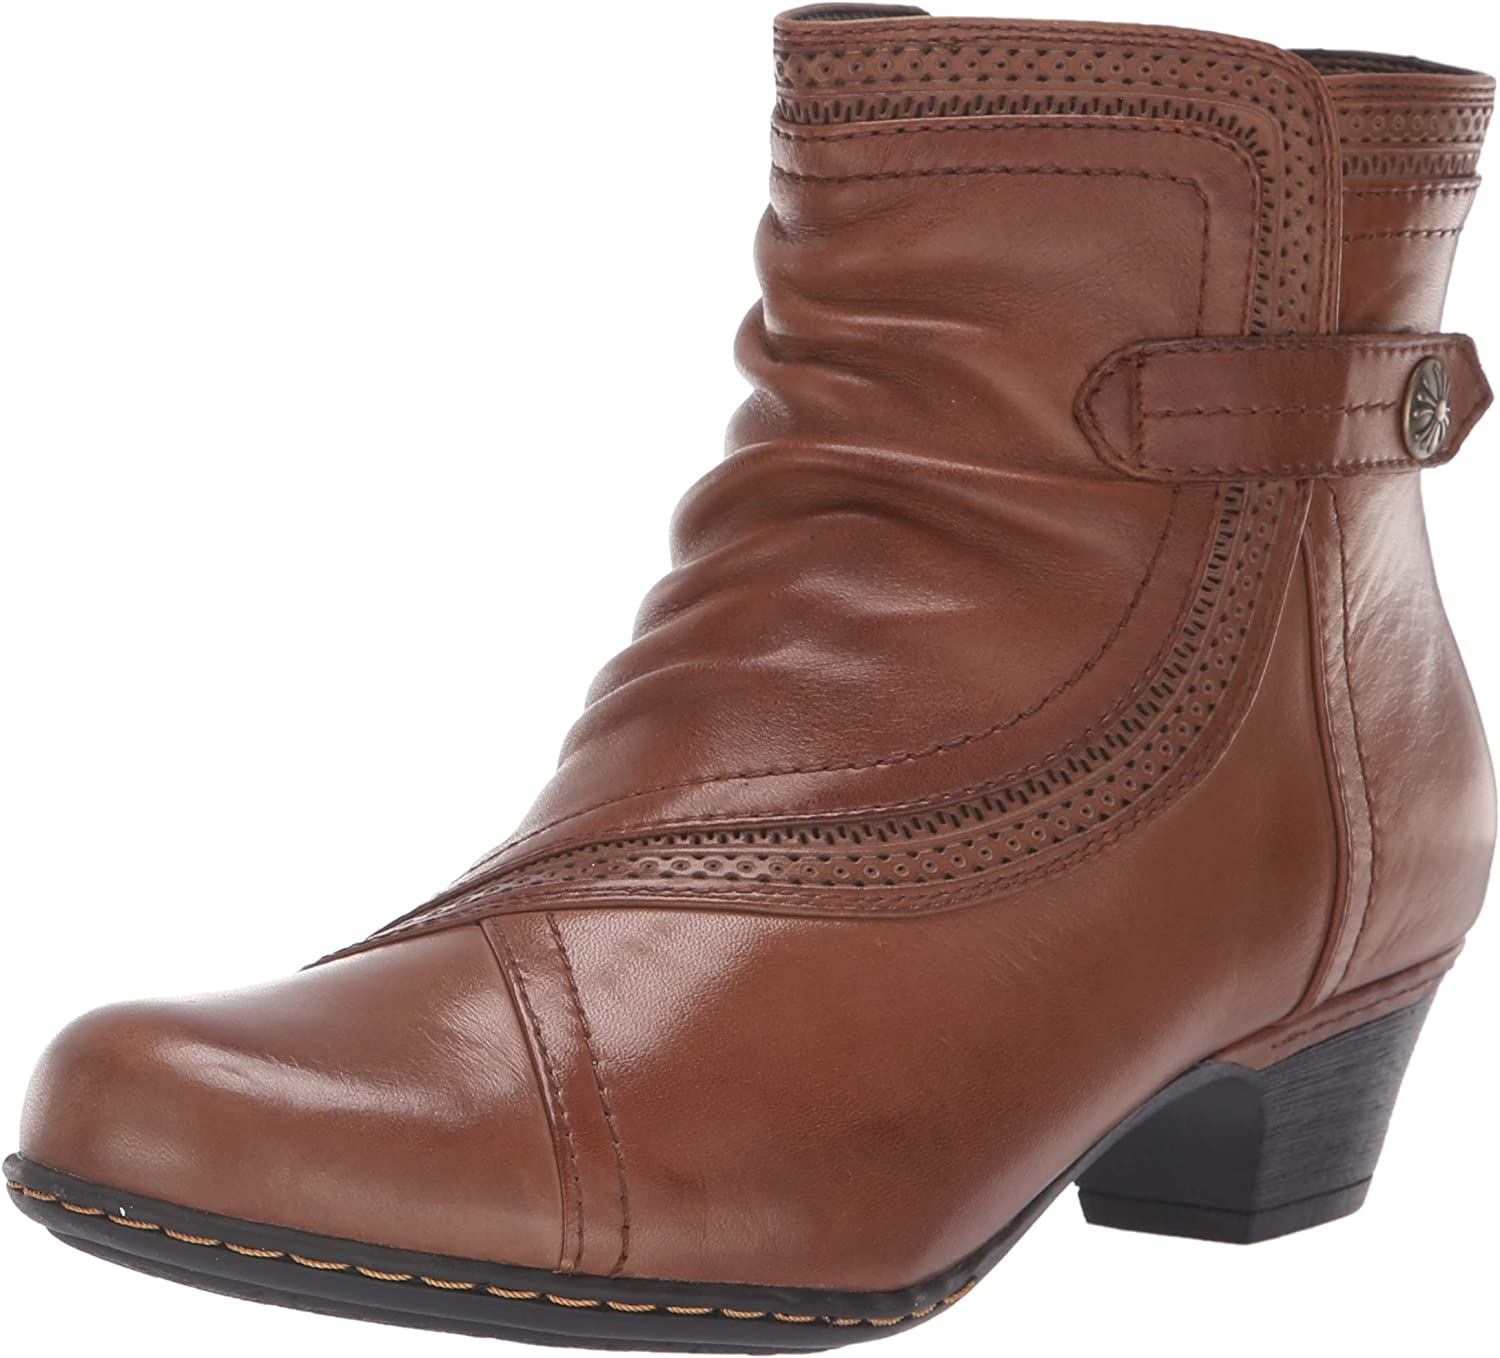 Cobb Hill Womens Abbott Panel Boot Ankle Boot